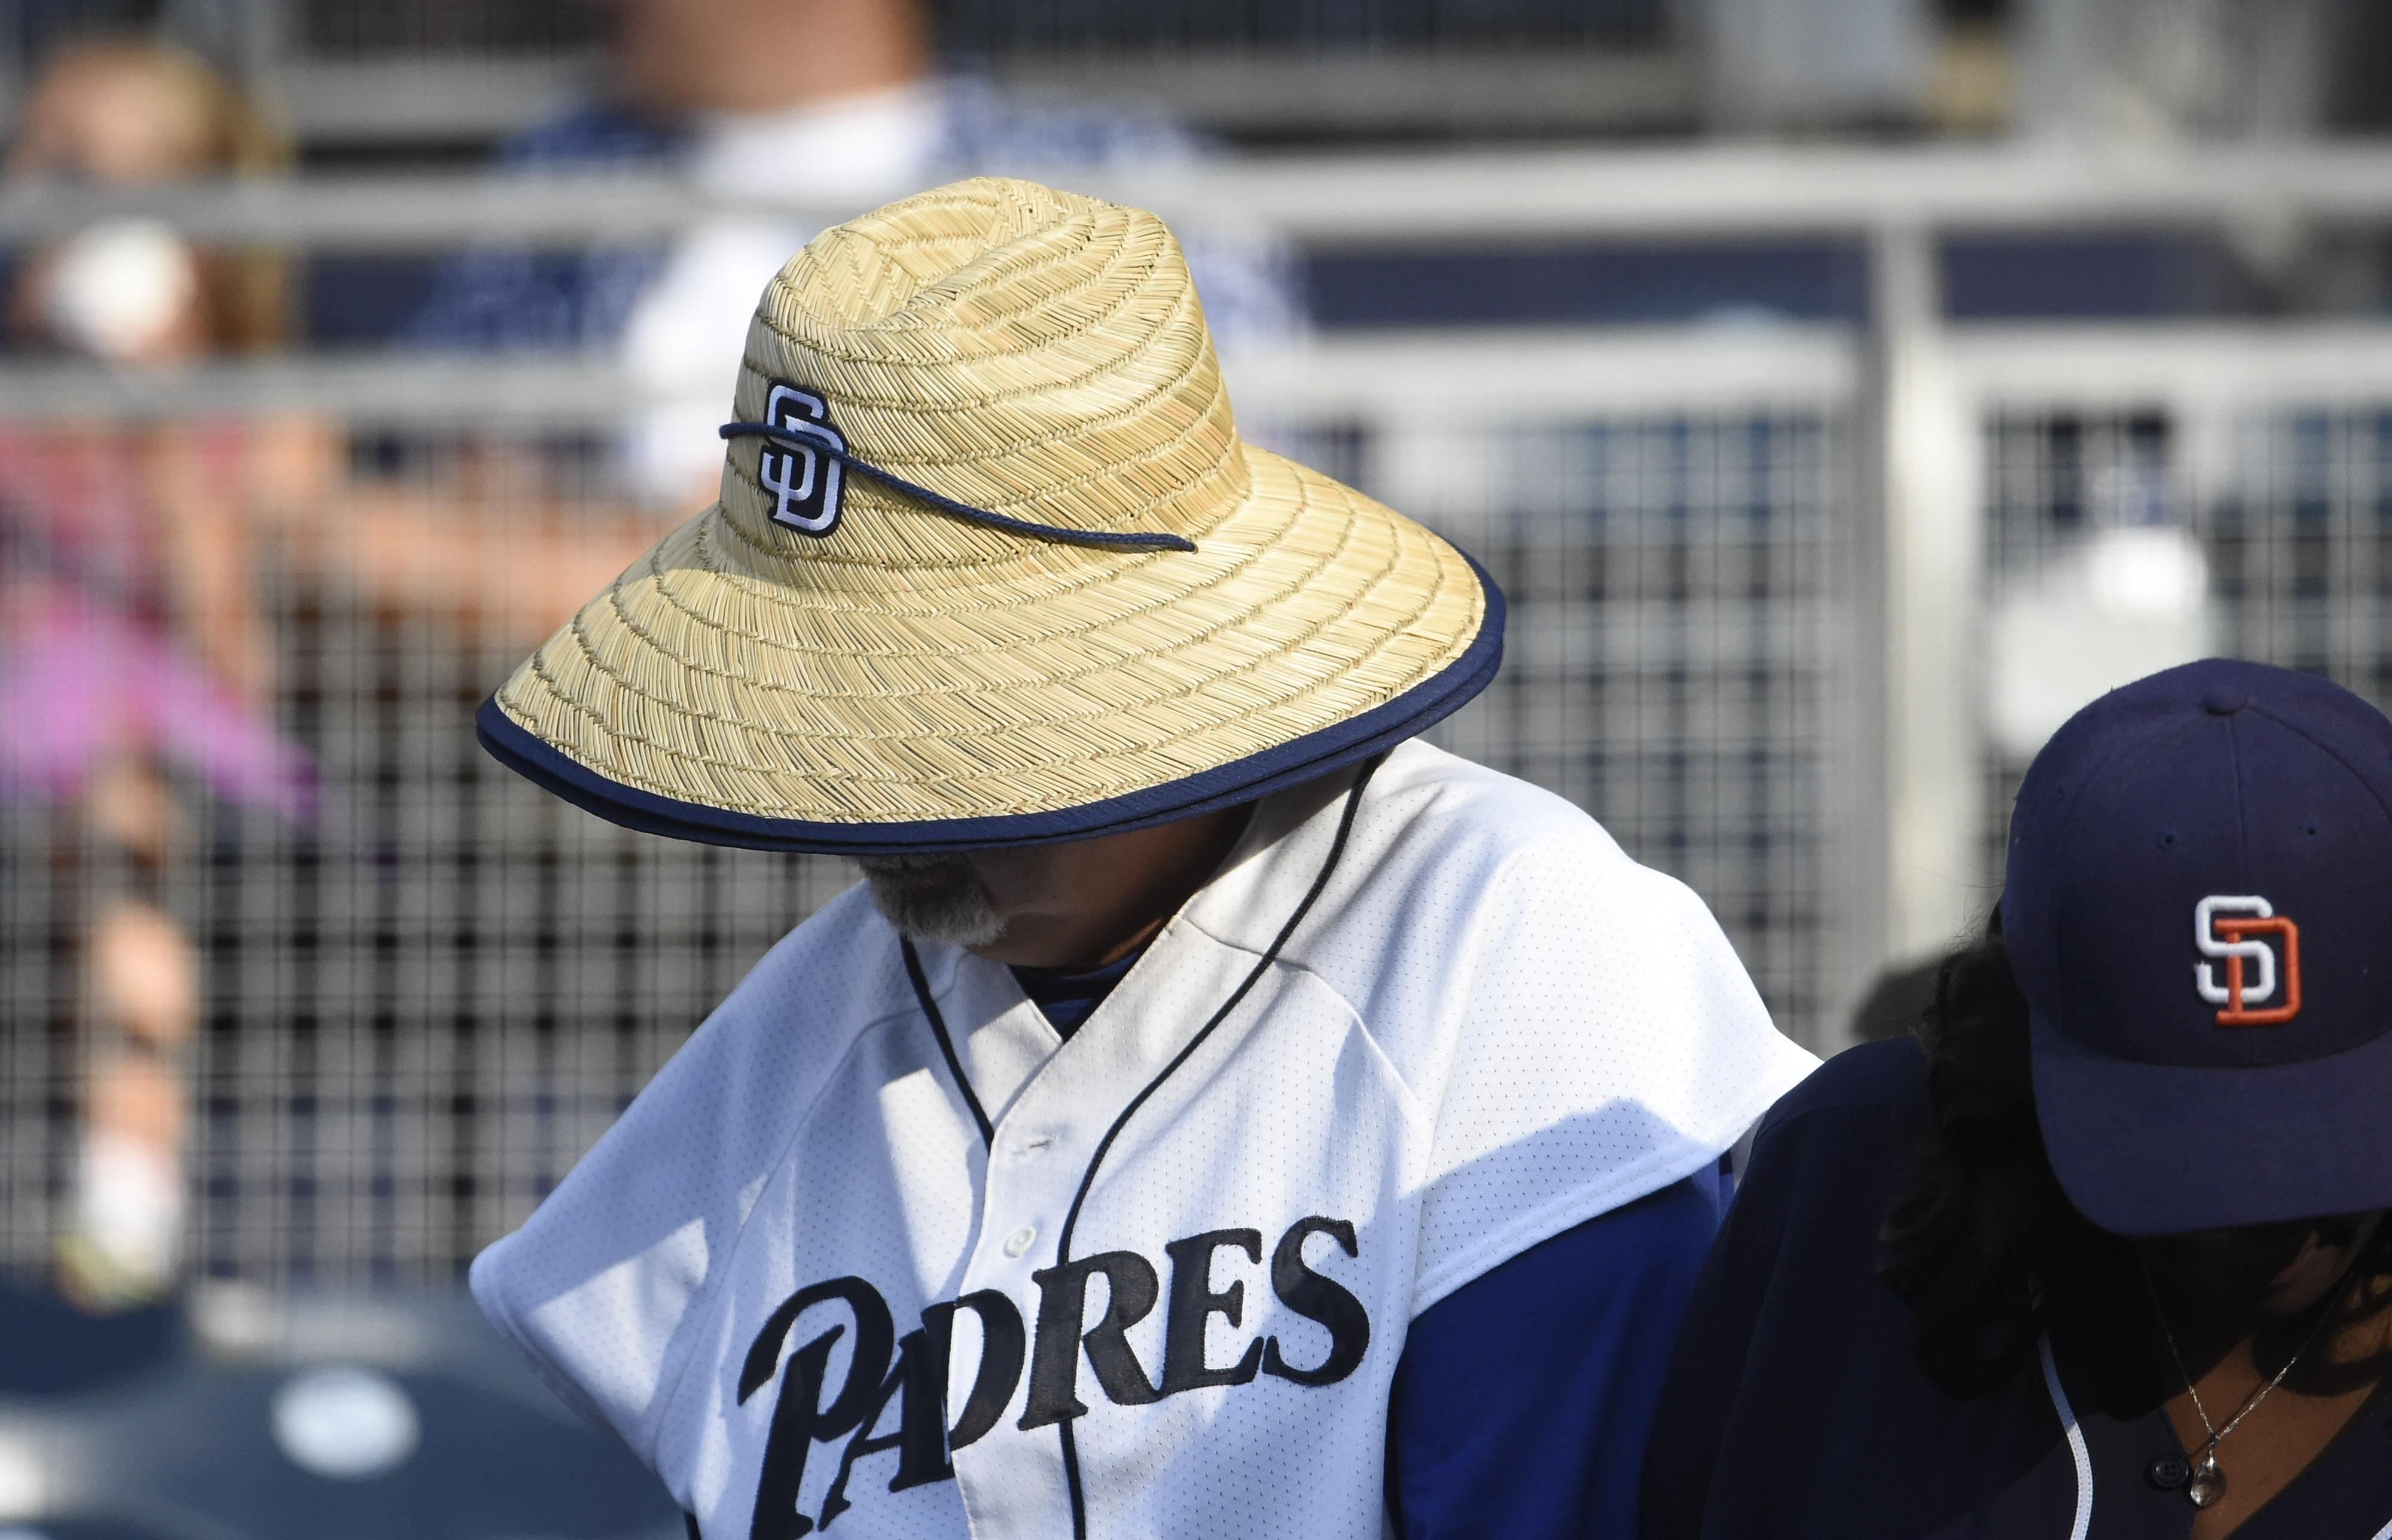 SAN DIEGO, CA - SEPTEMBER 1:  A fan wears a give away hat in the stands before a baseball game between the San Diego Padres and the Colorado Rockies at PETCO Park on September 1, 2018 in San Diego, California. A problem was found with the hats and they were recalled in the third inning.  (Photo by Denis Poroy/Getty Images)